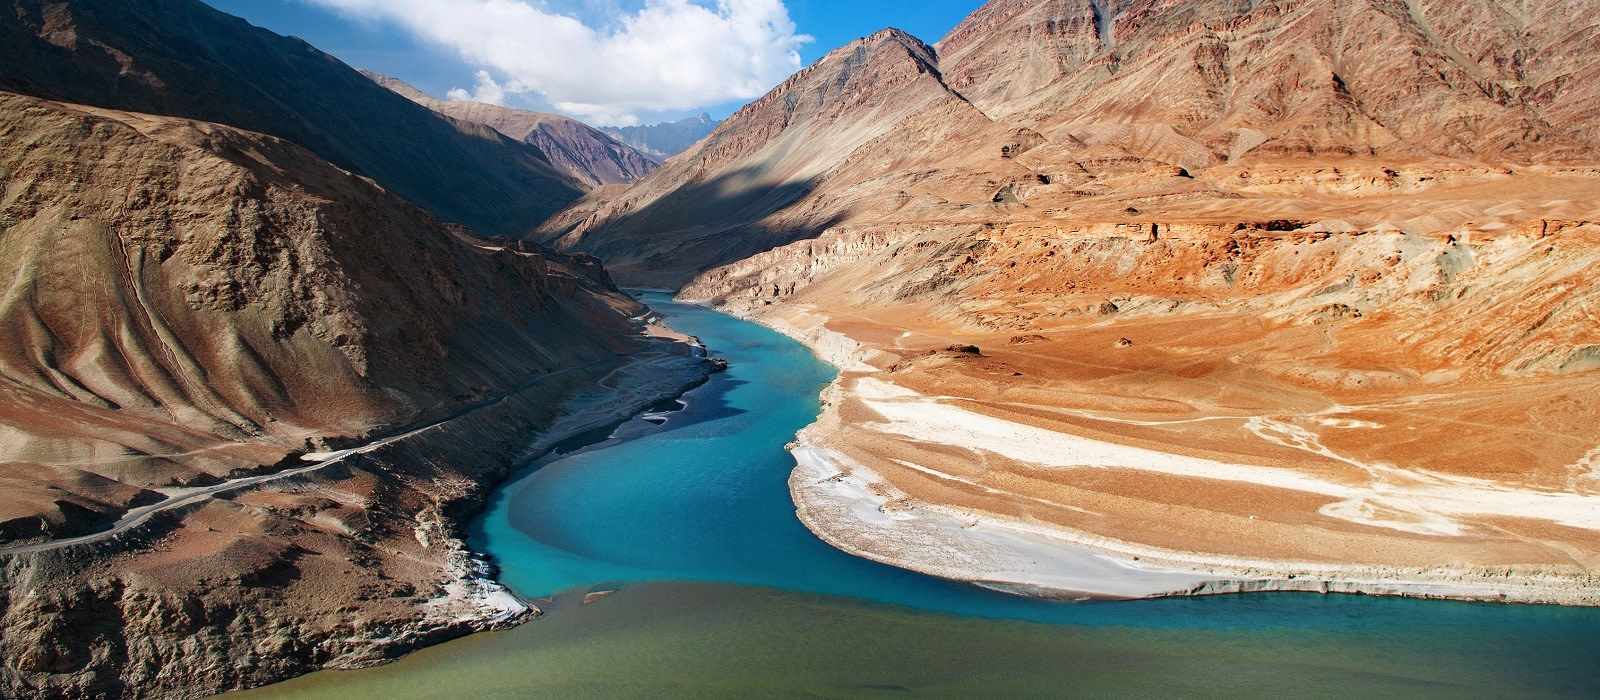 North India travel guide